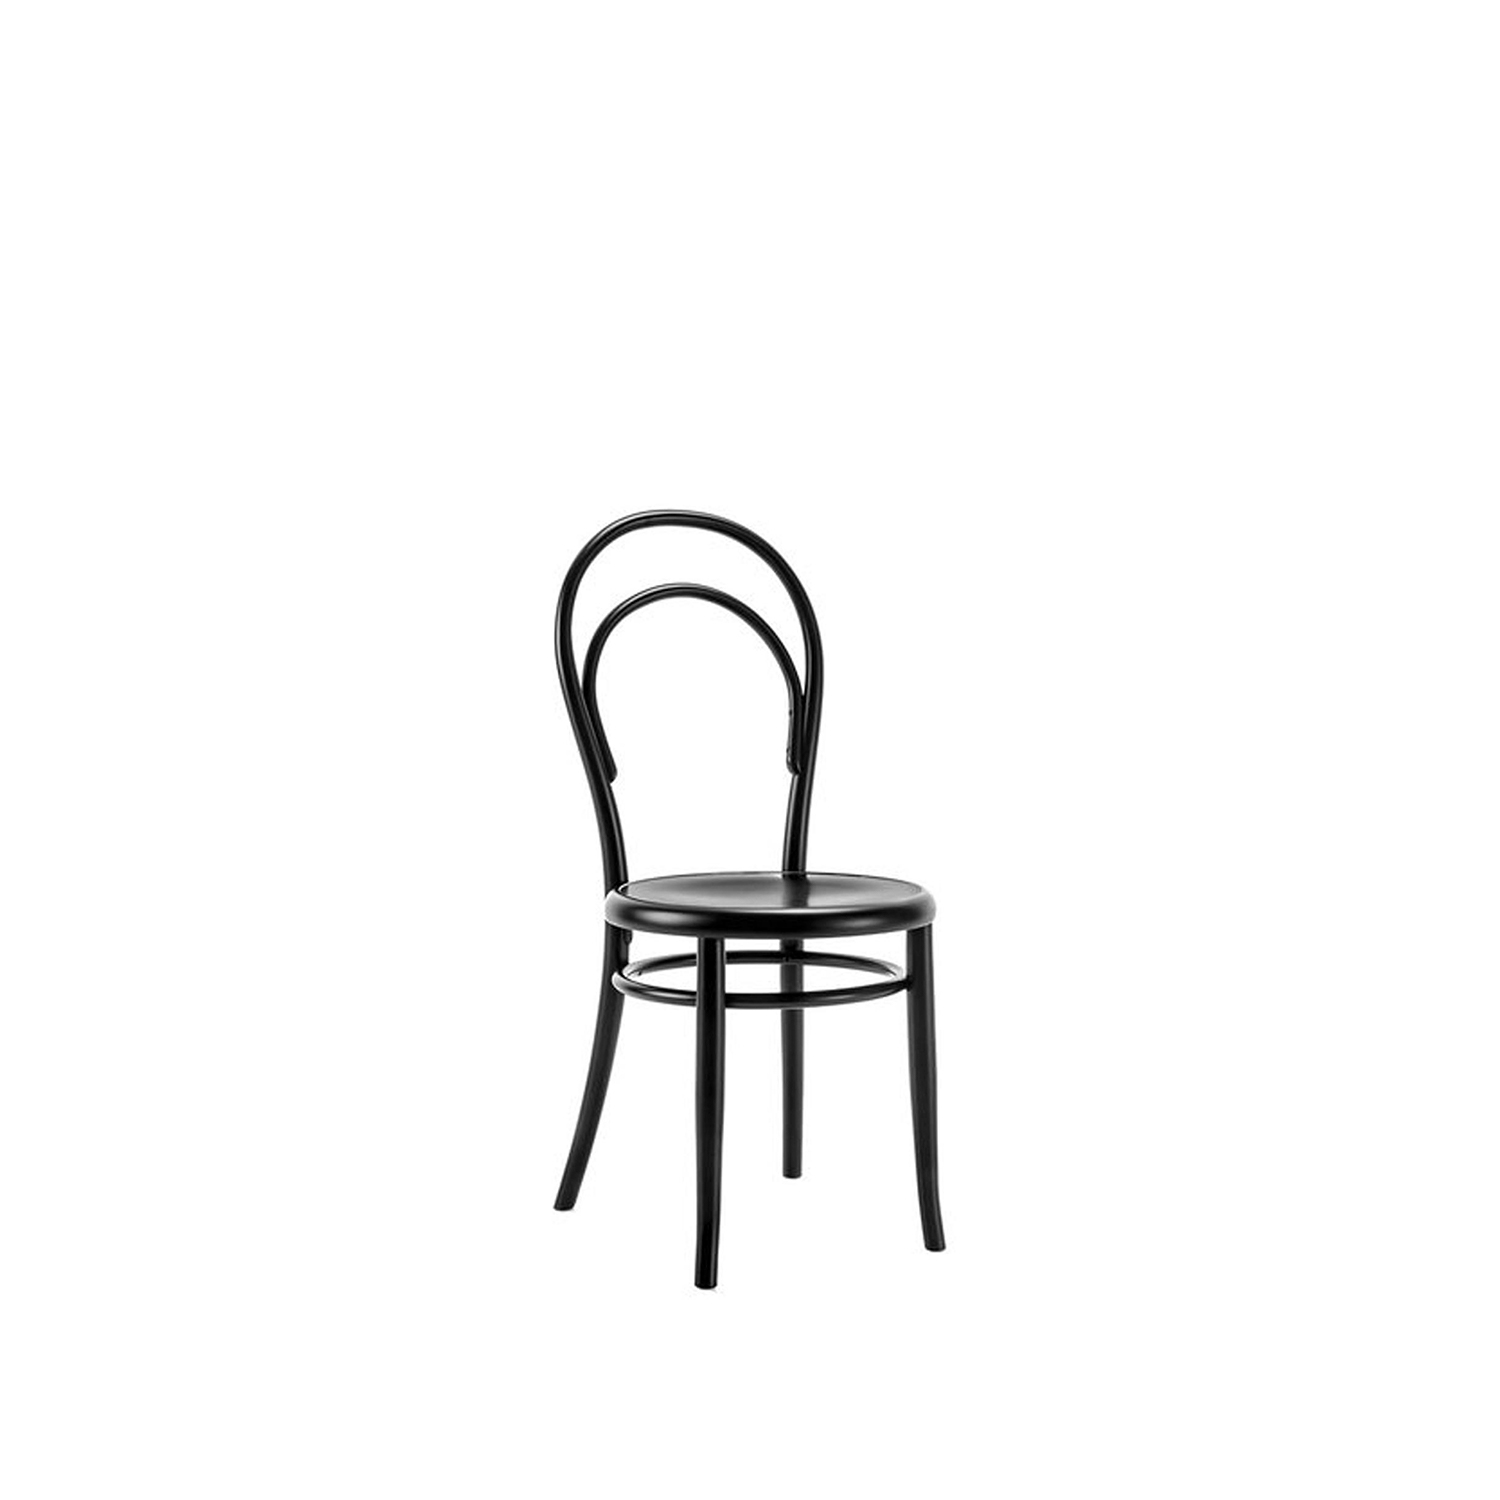 N.14 Black Chair - This exceptional chair reinterprets the elegance and timeless charm of the classic bistro chair. Every element that composes its structure is crafted of solid beechwood bent using steam, creating the elegant curves of the back and the rings below the plywood seat. Entirely veneered in black, this piece will be a superb addition to a modern dining room. It is also available with seat in Viennese cane or perforated plywood, please ask the Concierge for details.